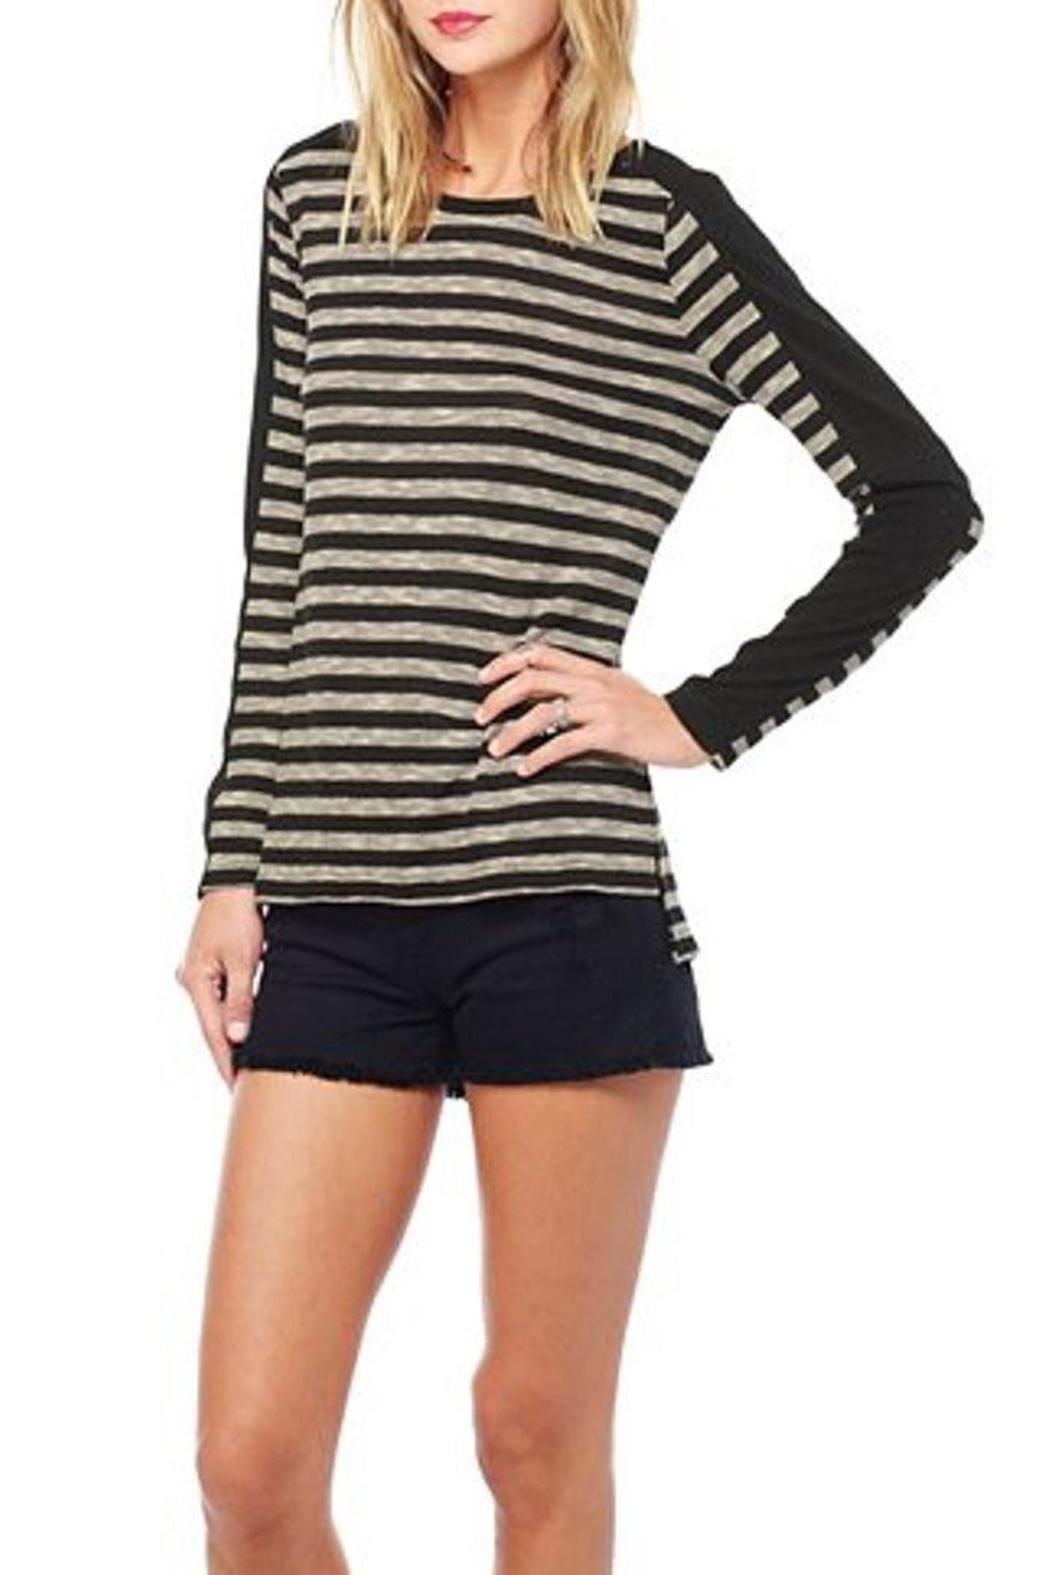 Jack by BB Dakota Fitz Striped Top - Front Cropped Image